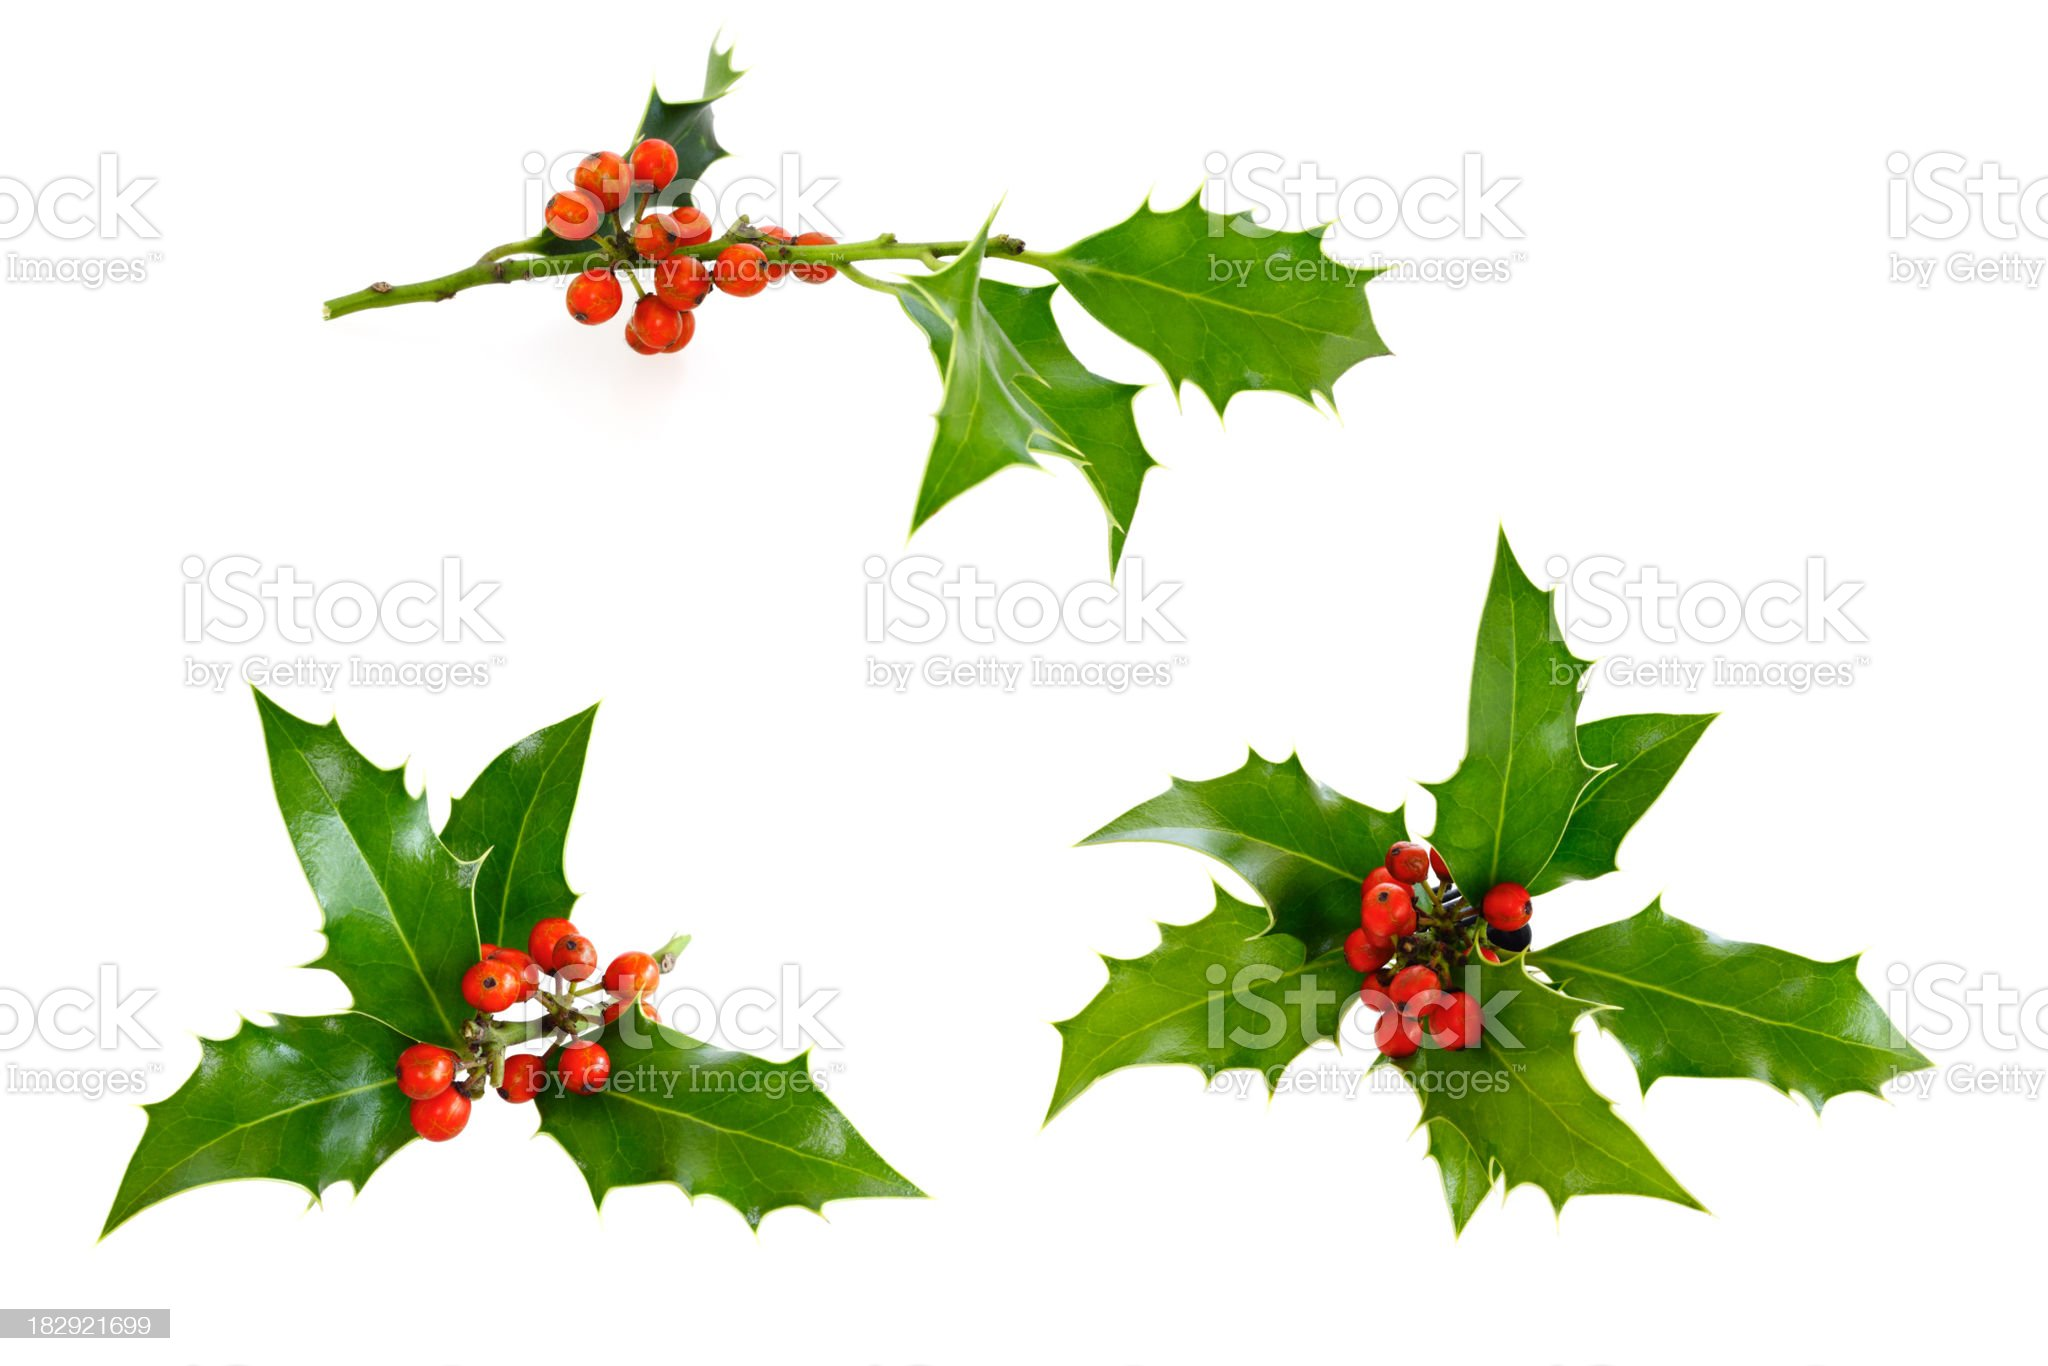 Isolated Holly Twig Selection royalty-free stock photo